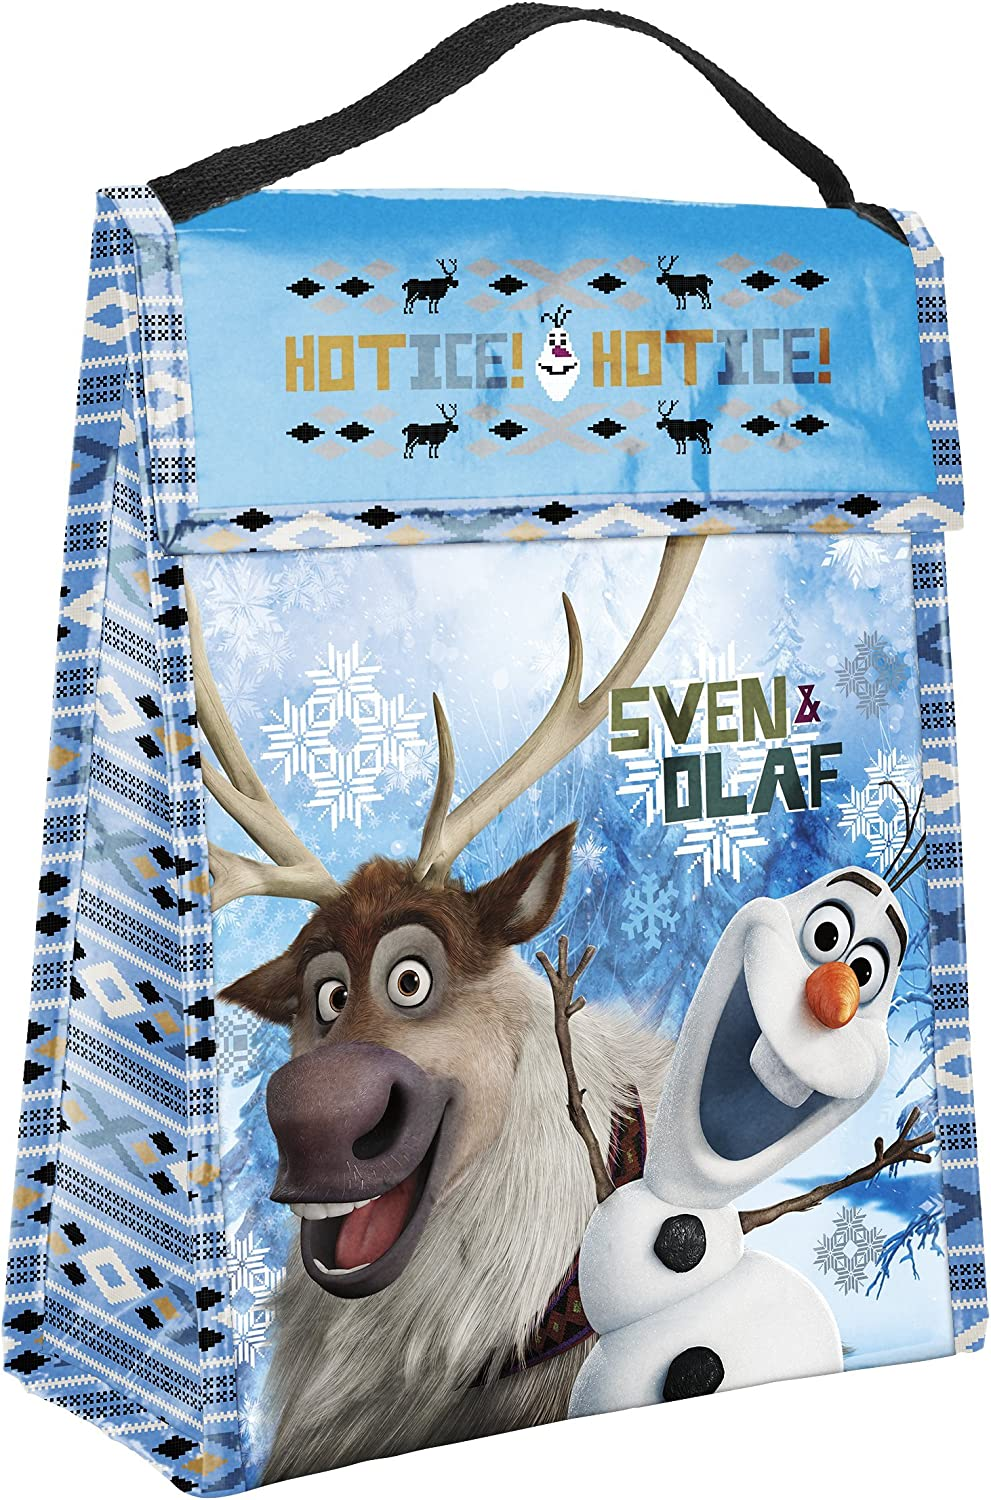 Zak Designs Insulated Lunch Bag 2021 autumn and winter new with BPA-free Frozen Popular products from Olaf